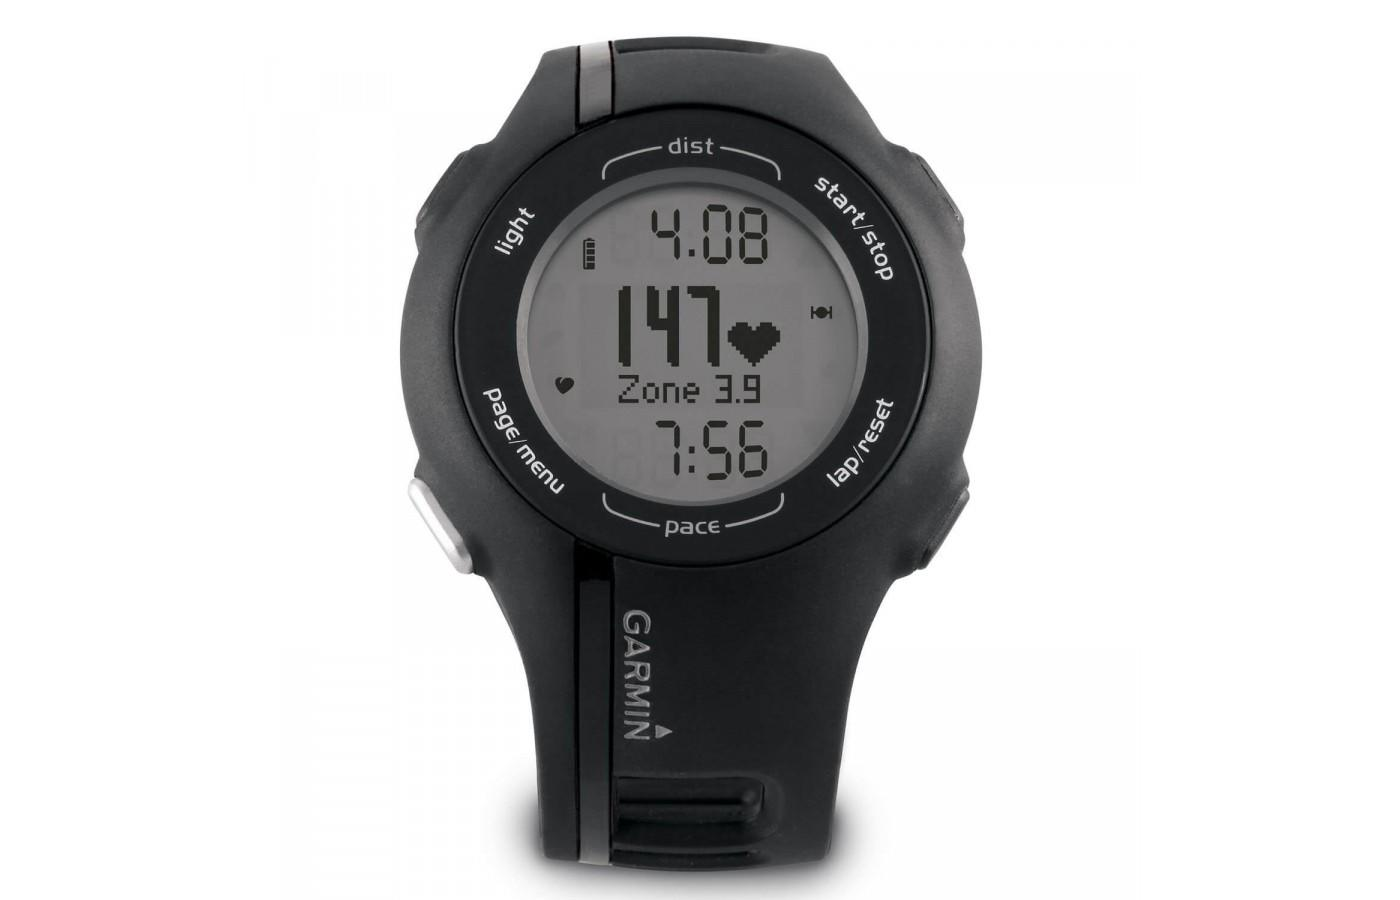 The Garmin Forerunner 210 can be found at a discounted price since it is an older model